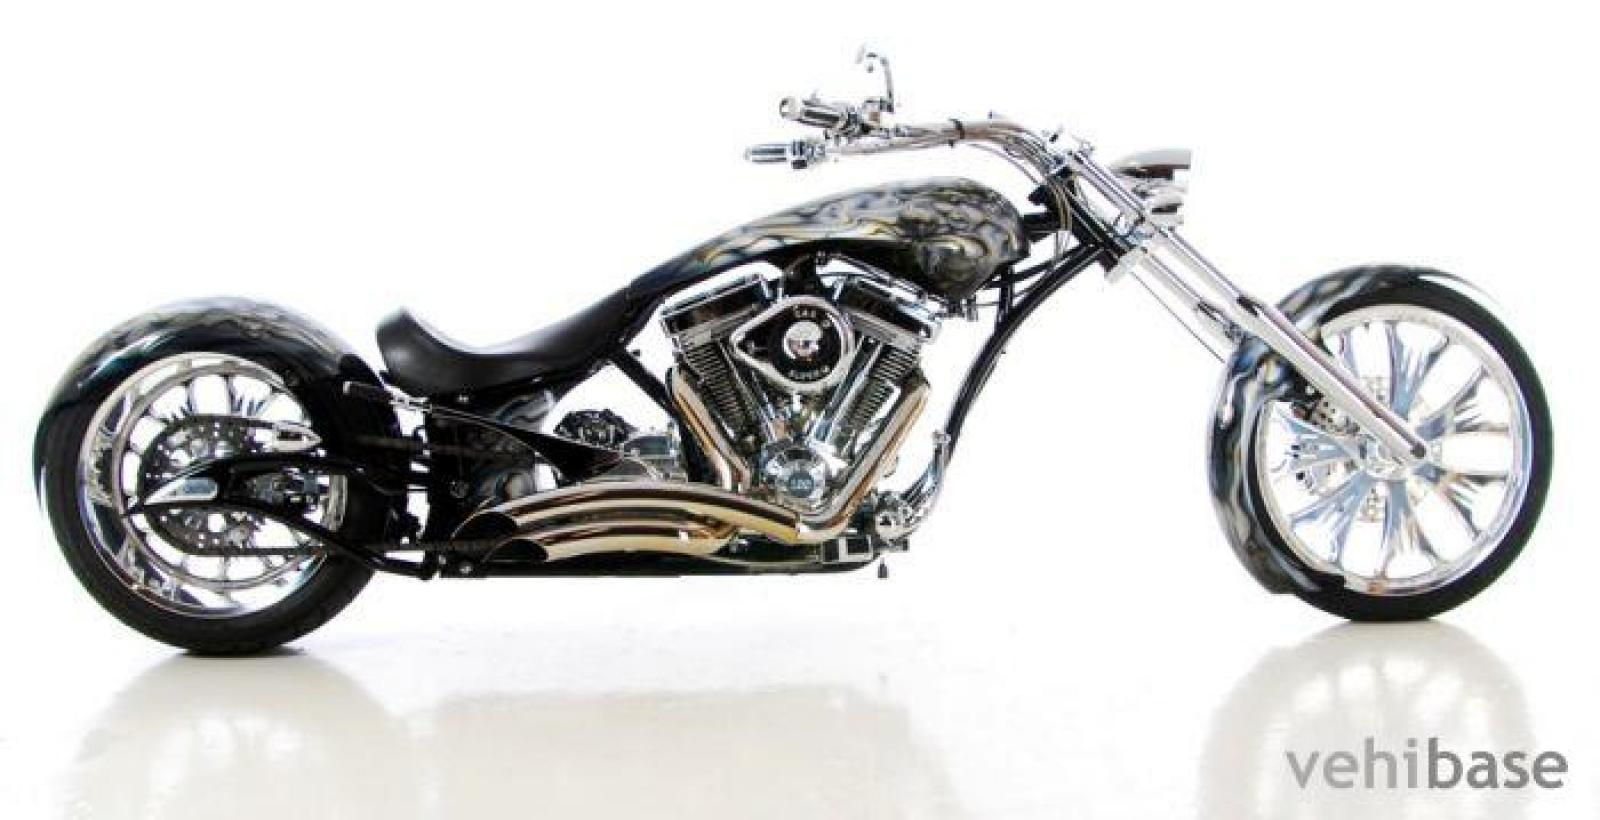 Big Bear Choppers Merc Softail 100 Smooth Carb images #63770